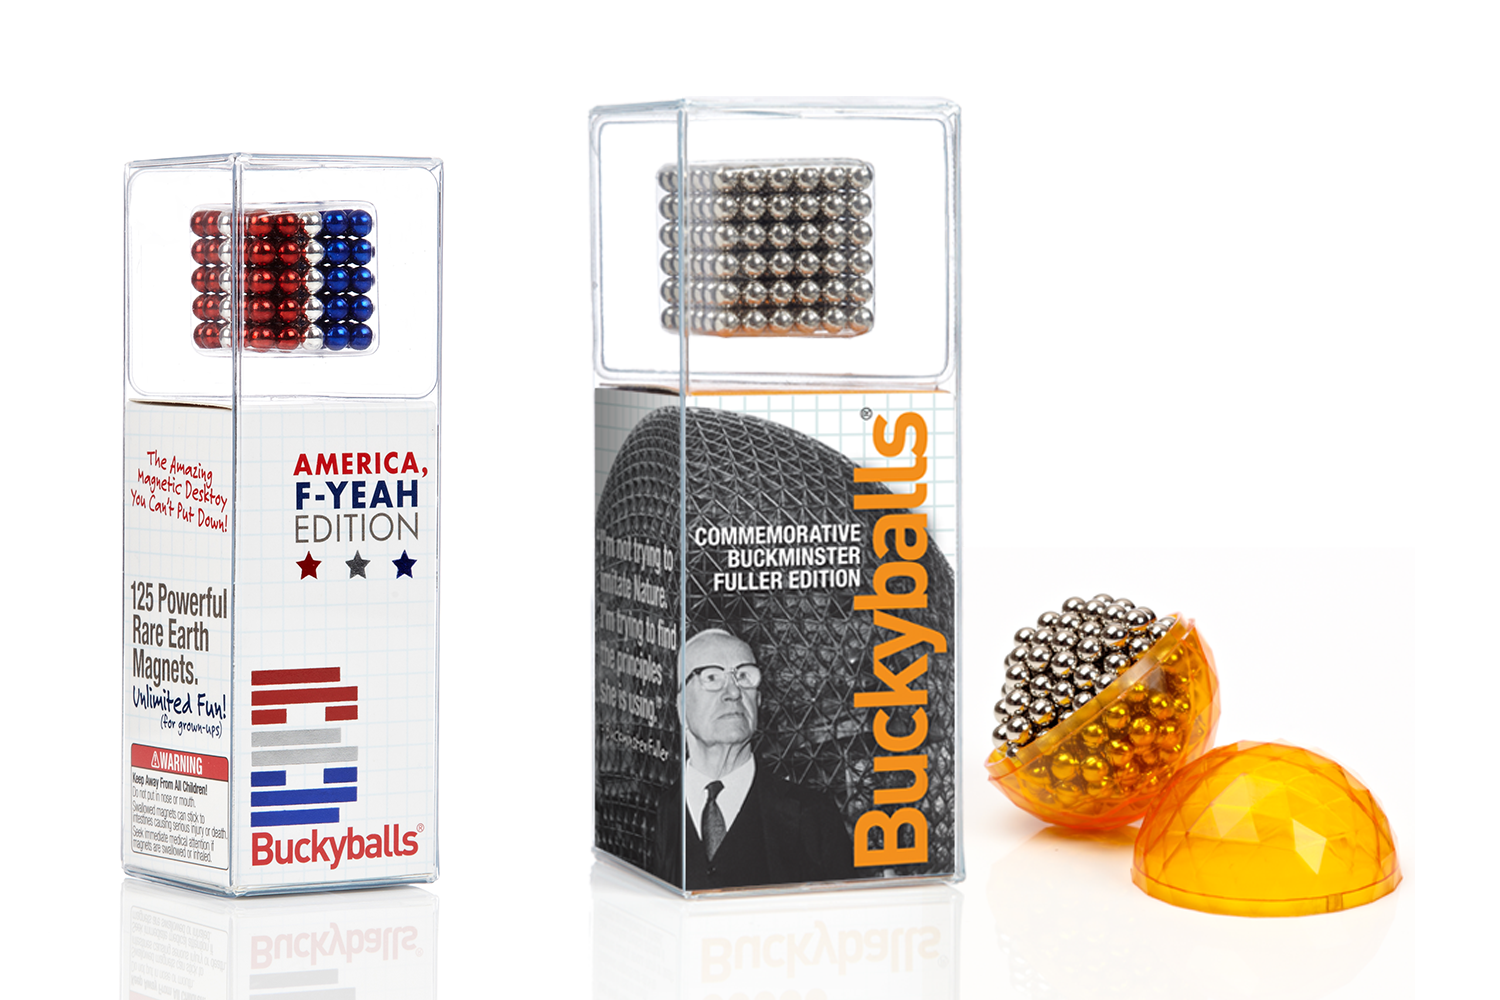 Buckyballs Custom Editions